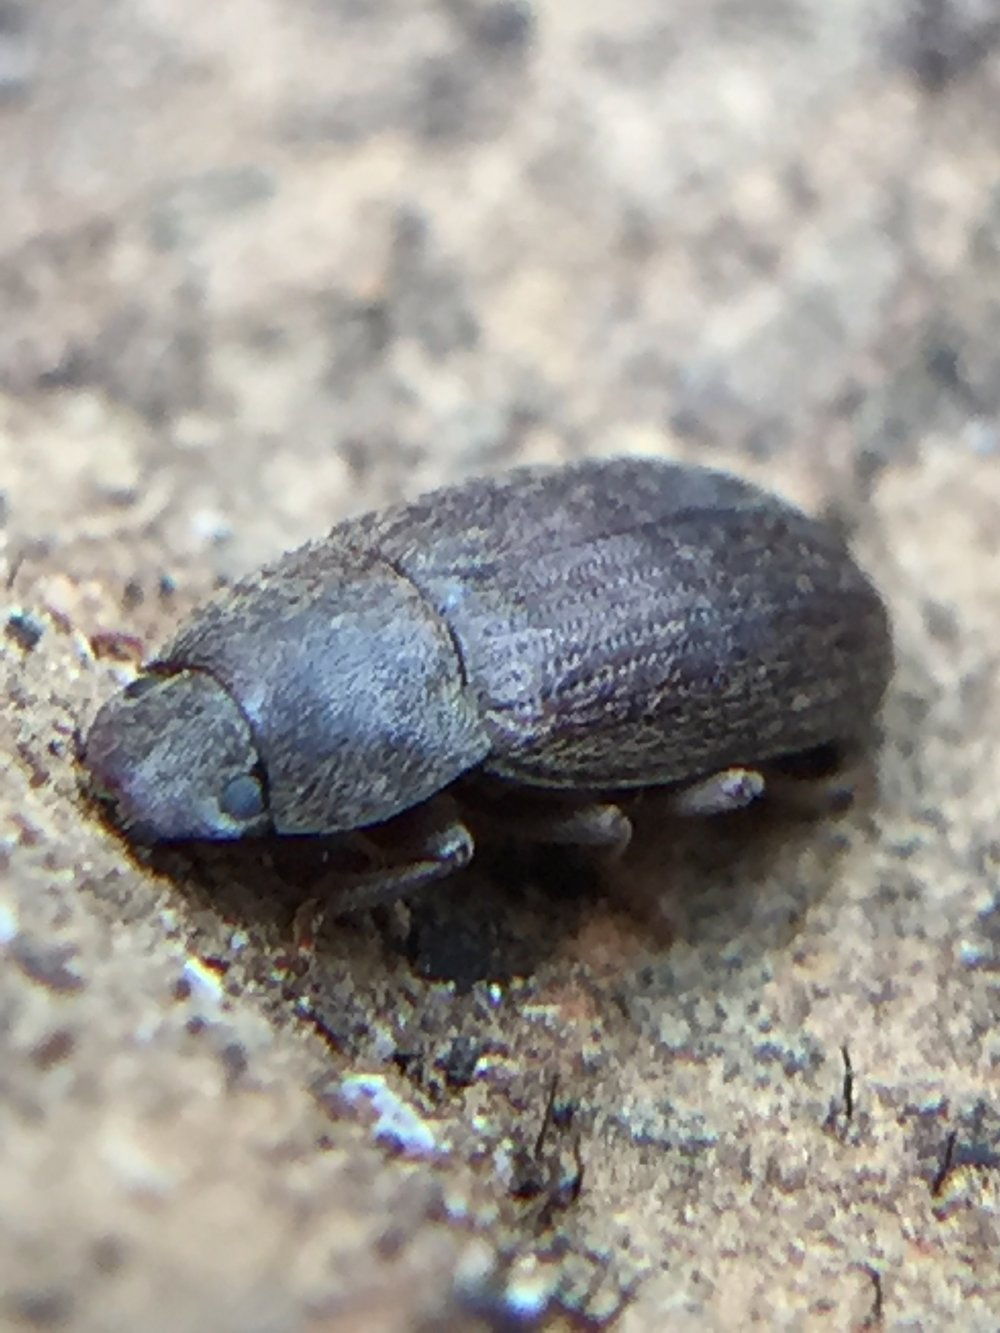 I've no idea what kind of beetle this is.